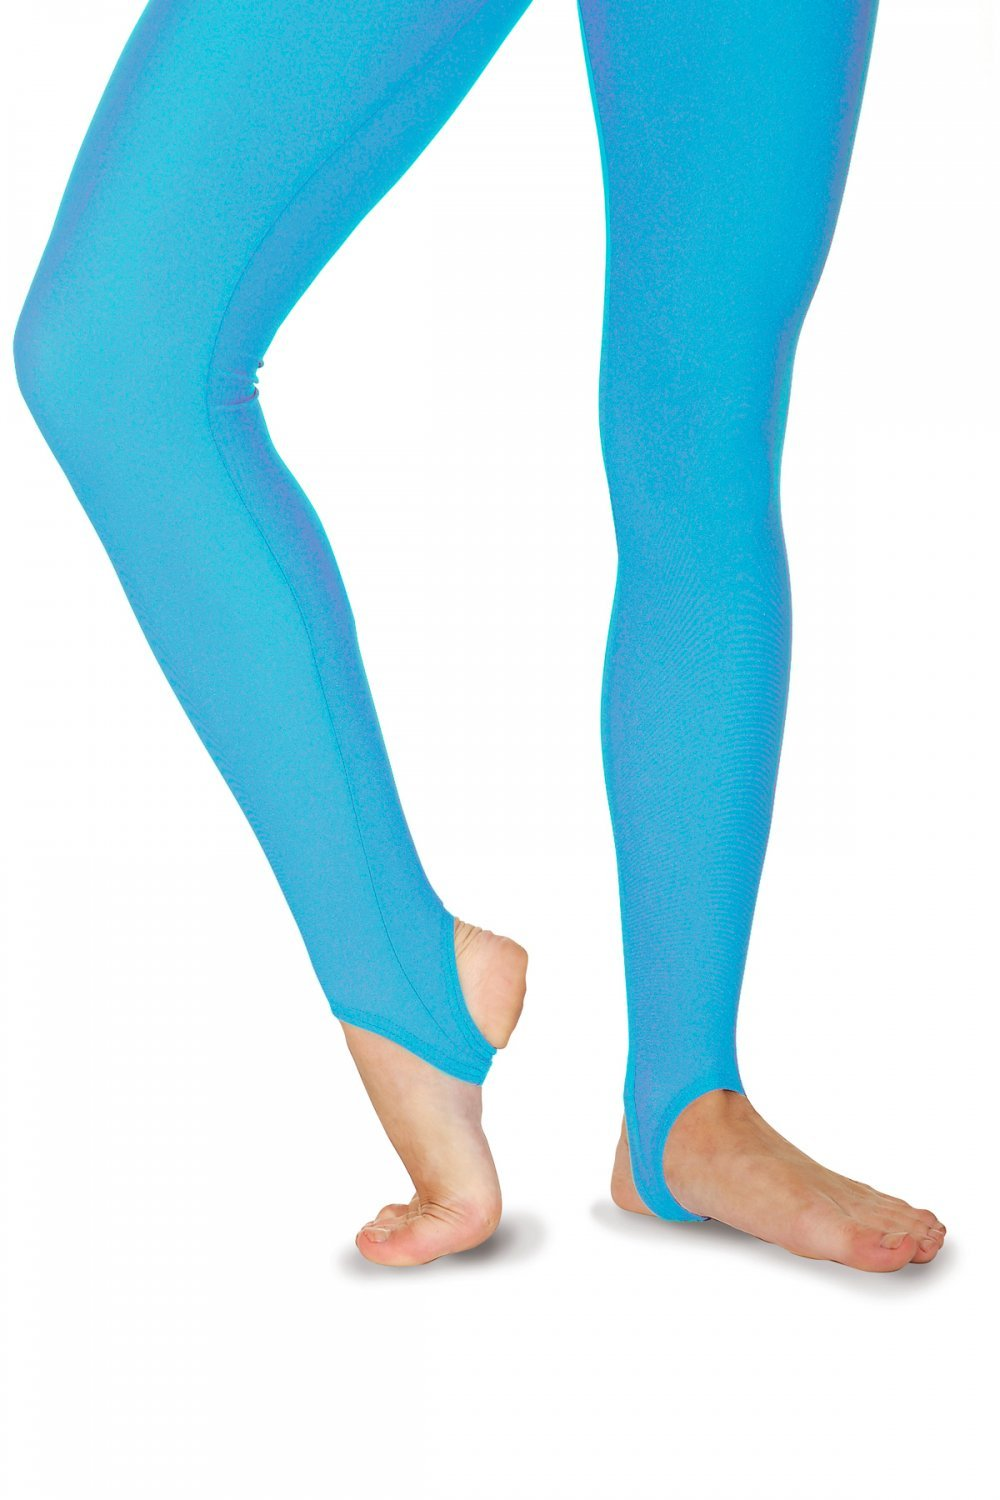 Roch Valley Lst Stirrup Tights Mallas Mujer